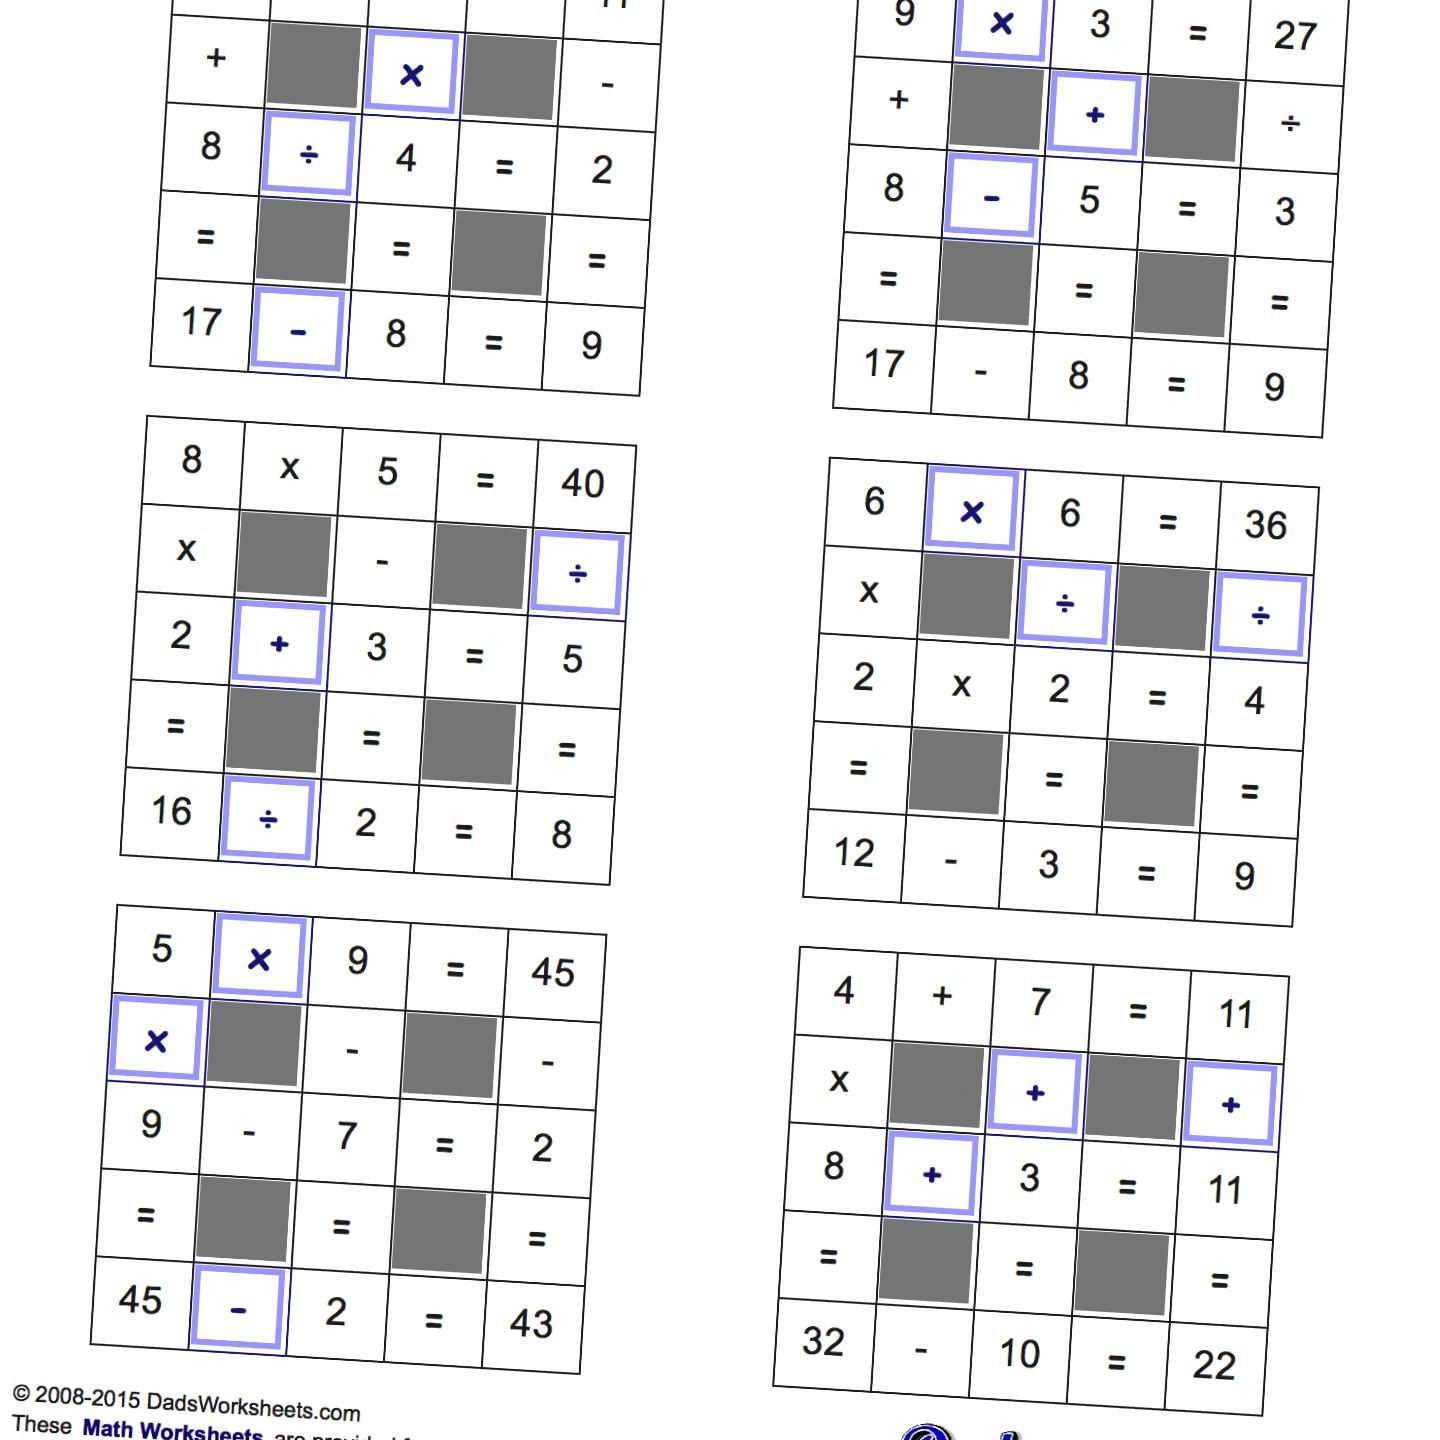 Grid Puzzles All Operations With Missing Operations Small Math